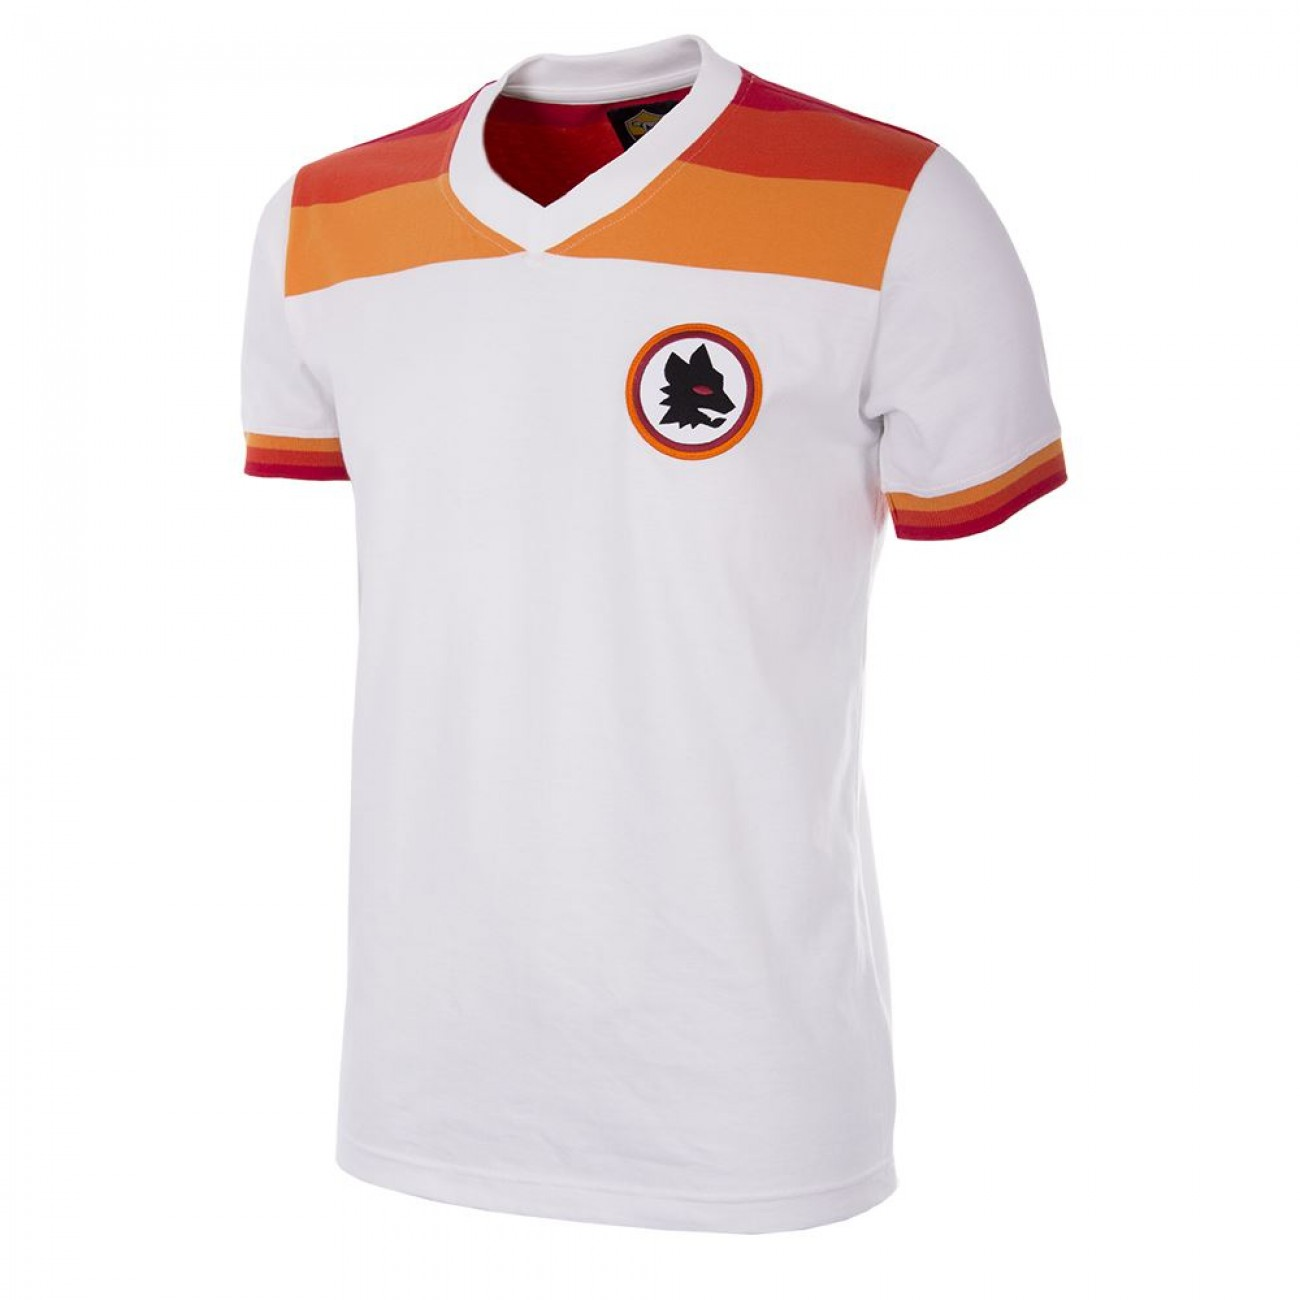 6dd6e6ba05239 Camiseta antigua AS Roma oficial blanca